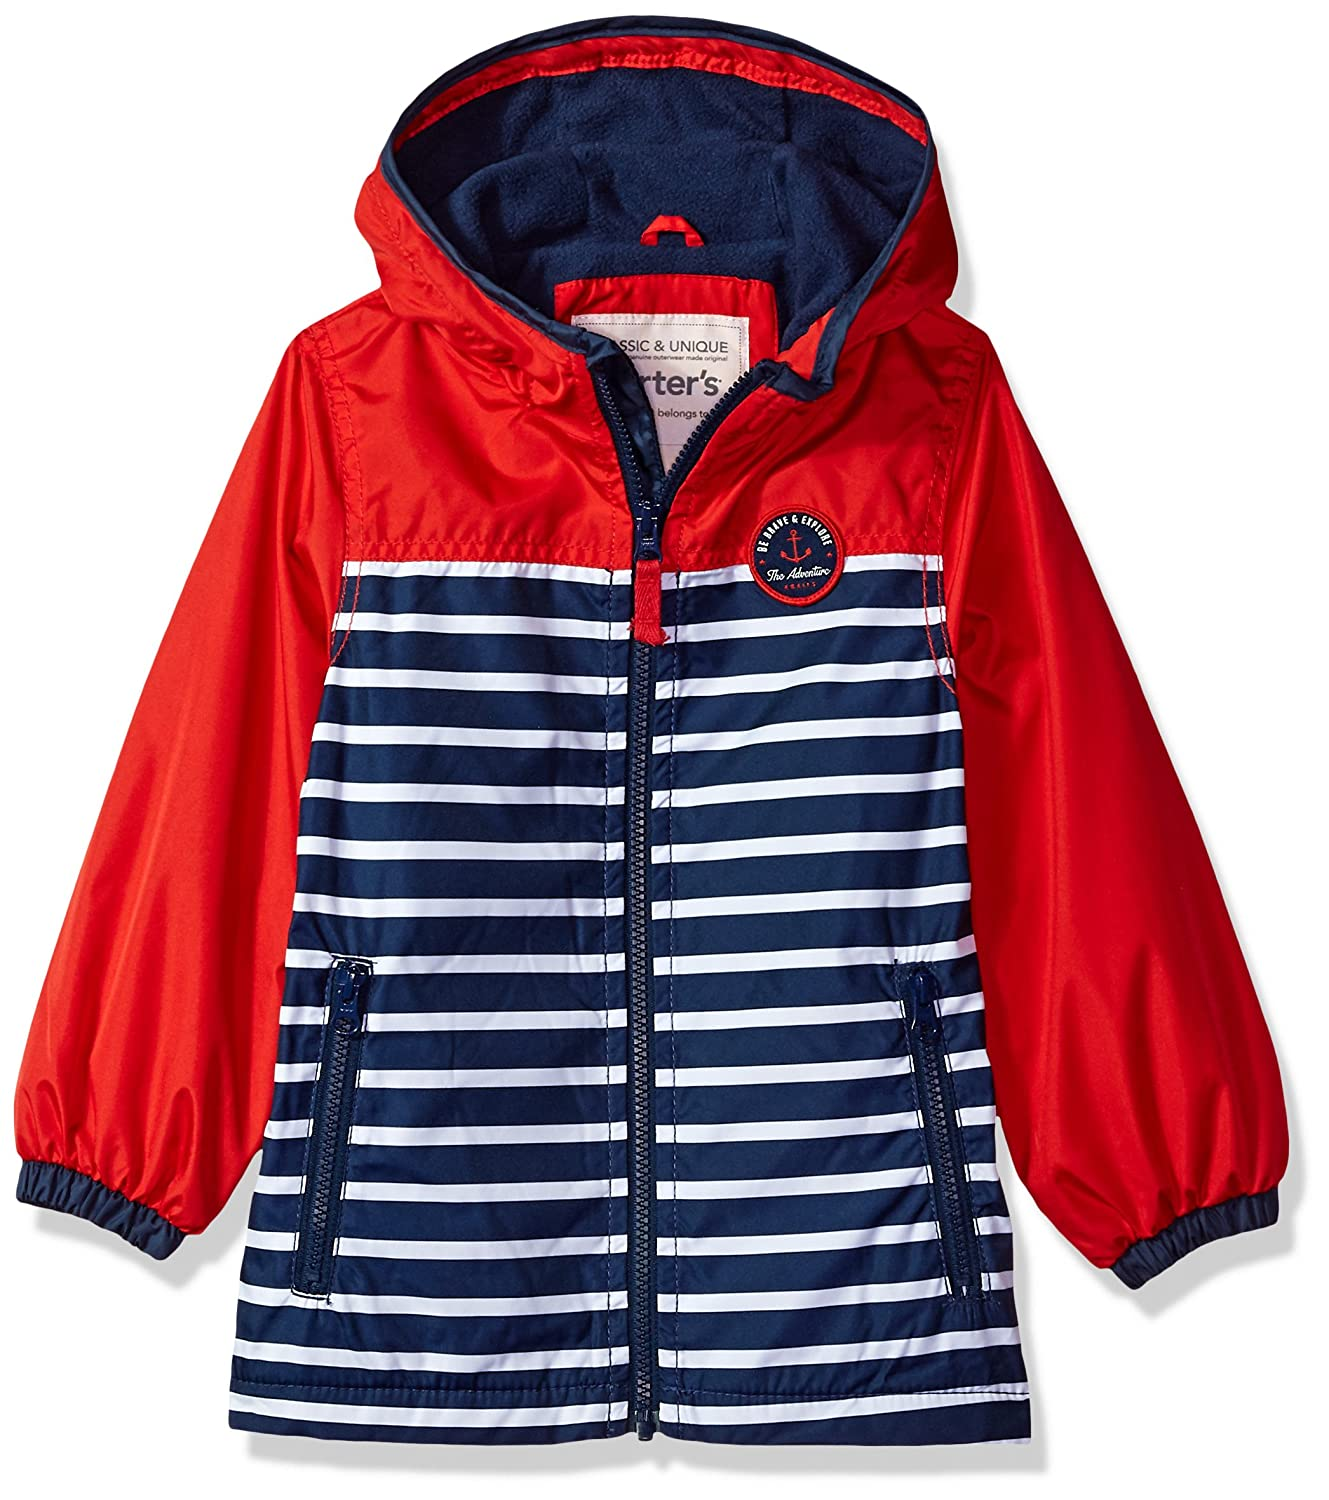 6e97766f5 Amazon.com  Carter s Boys  Fleece Lined Perfect Midweight Jacket ...